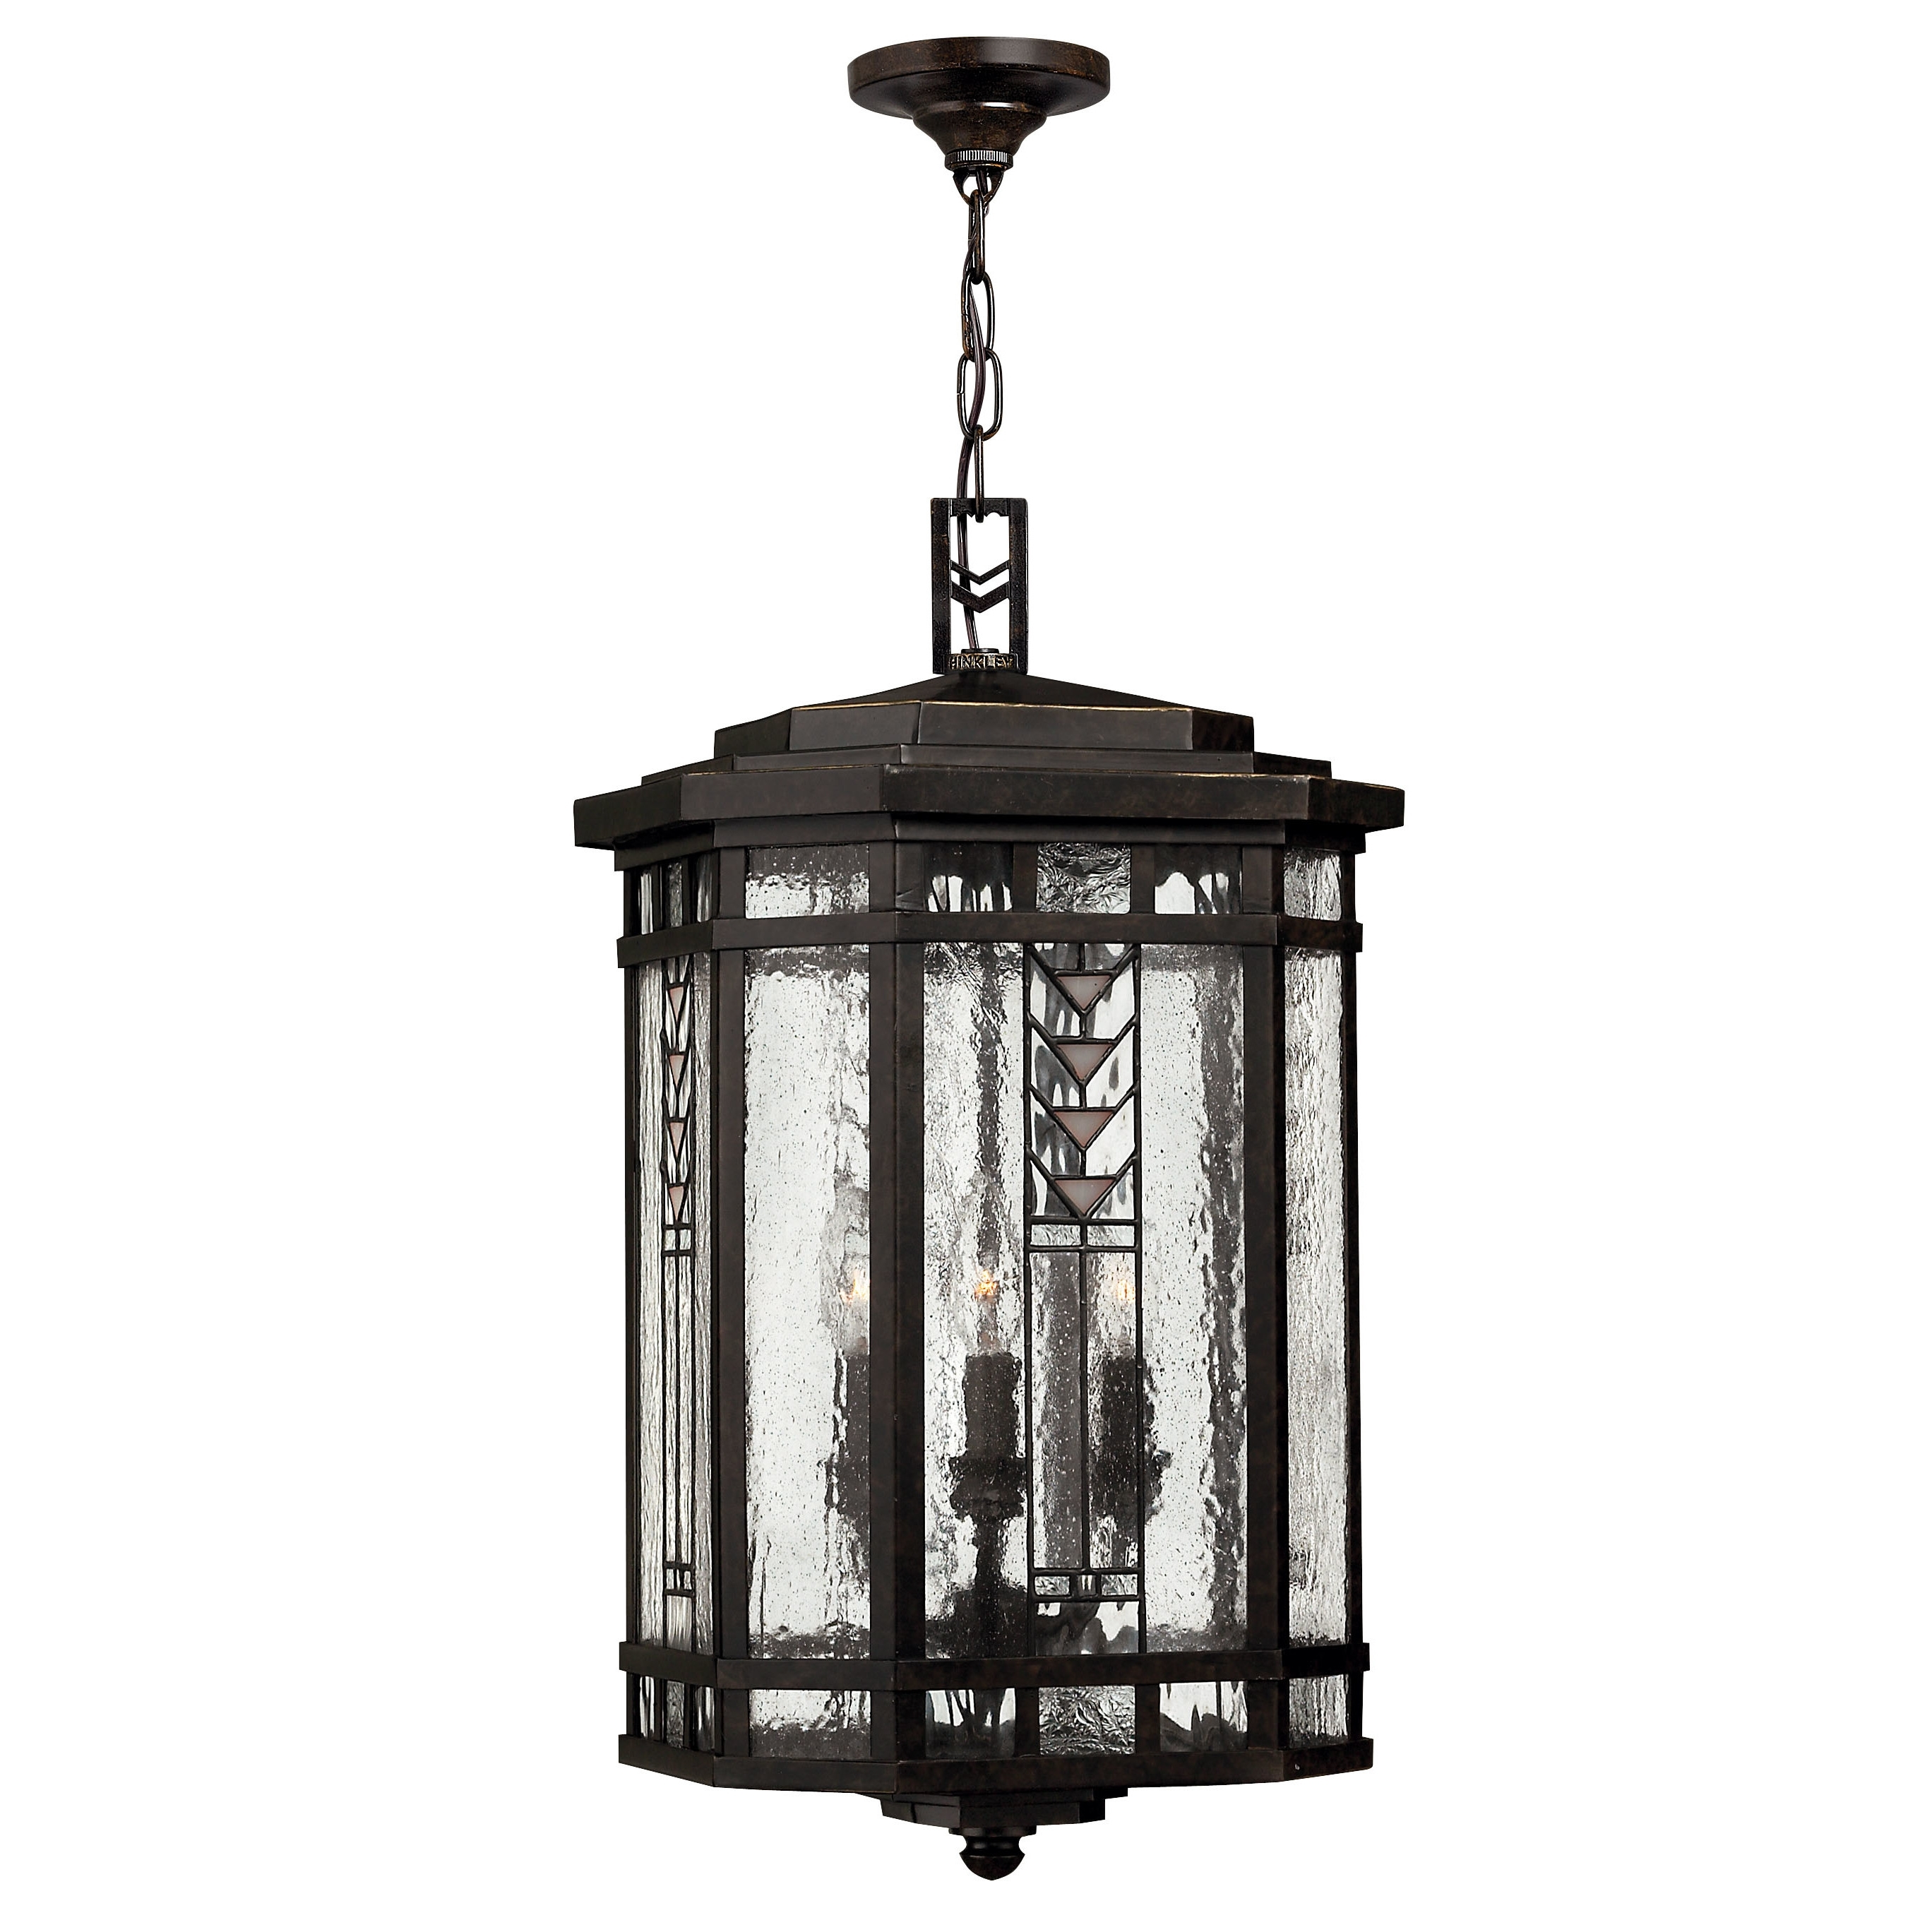 Outdoor Hanging Lights Wayfair Americana 5 Light Chandelier ~ Loversiq Intended For Wayfair Outdoor Hanging Lighting Fixtures (View 8 of 15)